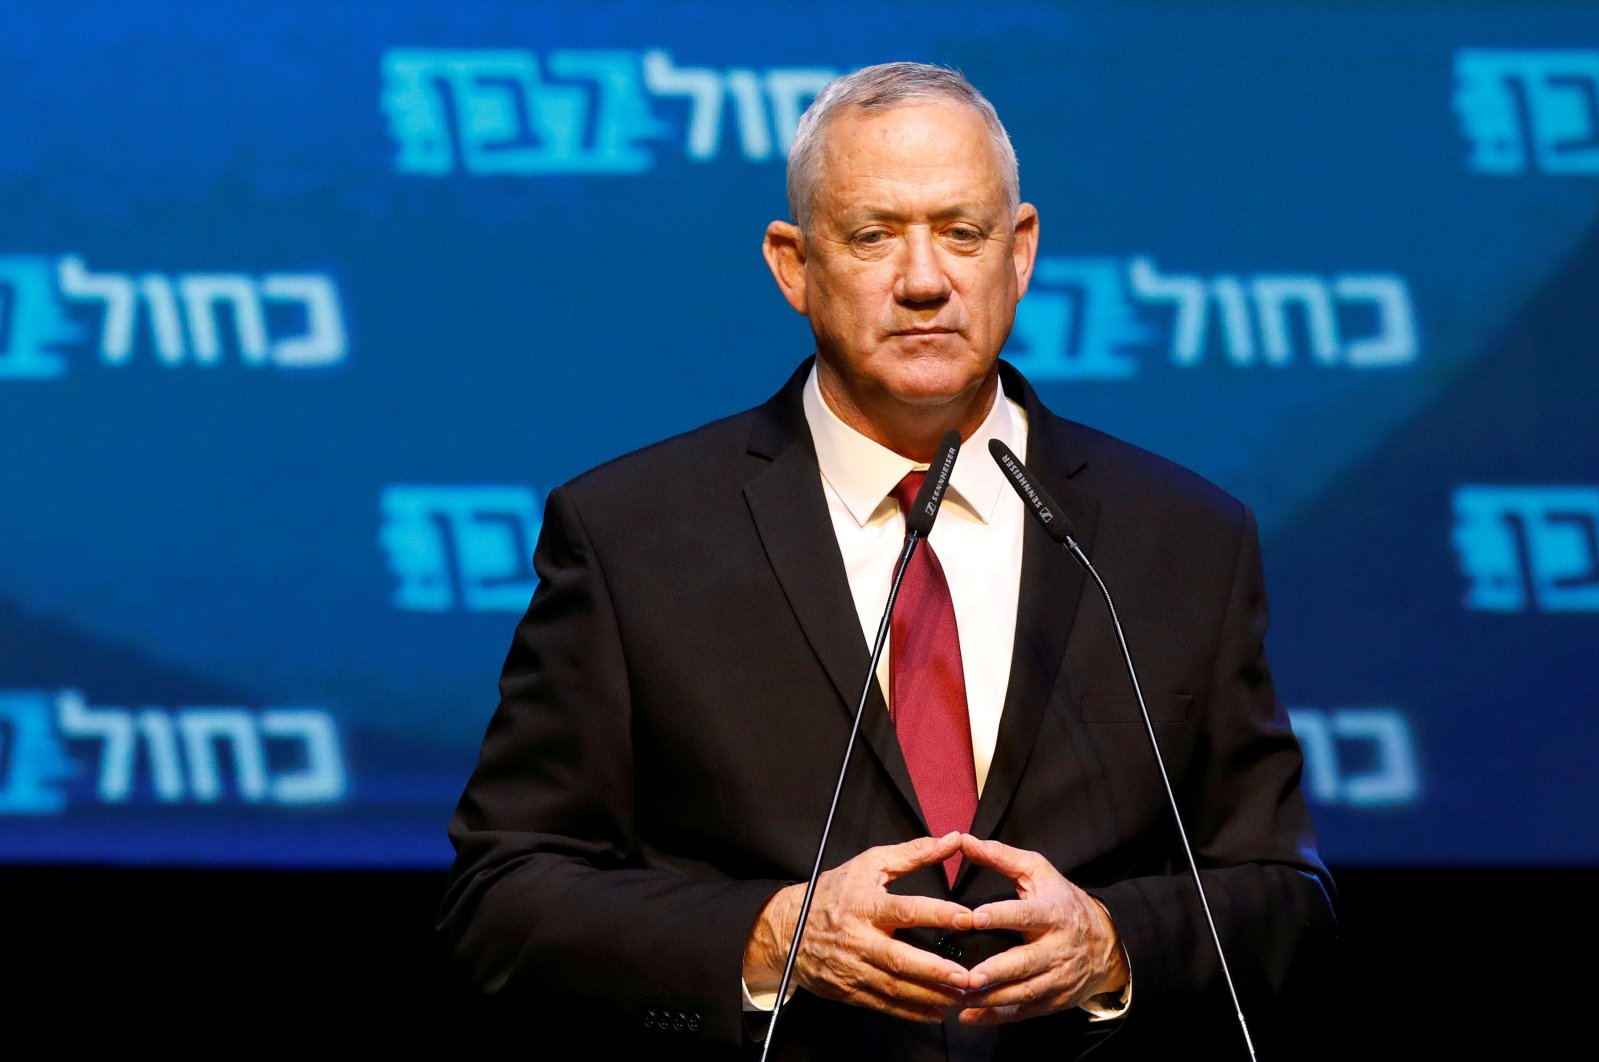 Blue and White party leader Benny Gantz speaks at the party headquarters, Tel Aviv, Sept.18, 2019. (REUTERS Photo)